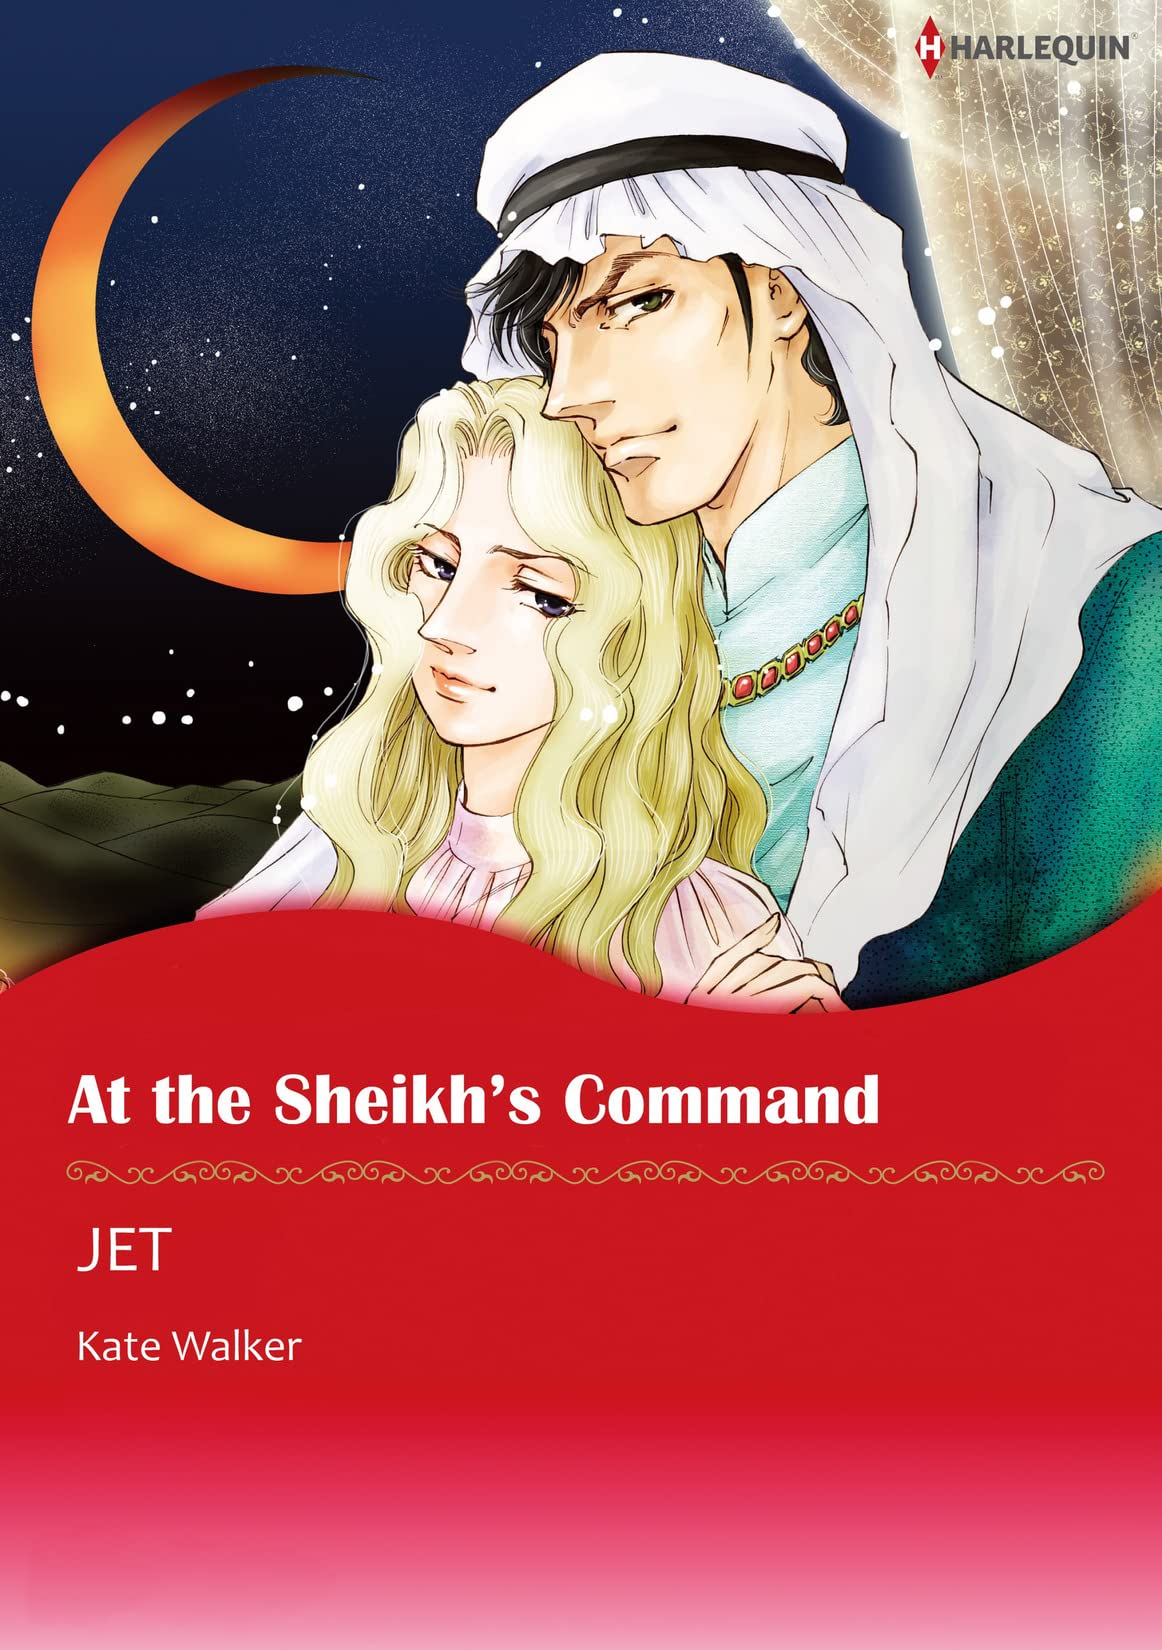 At The Sheikh's Command